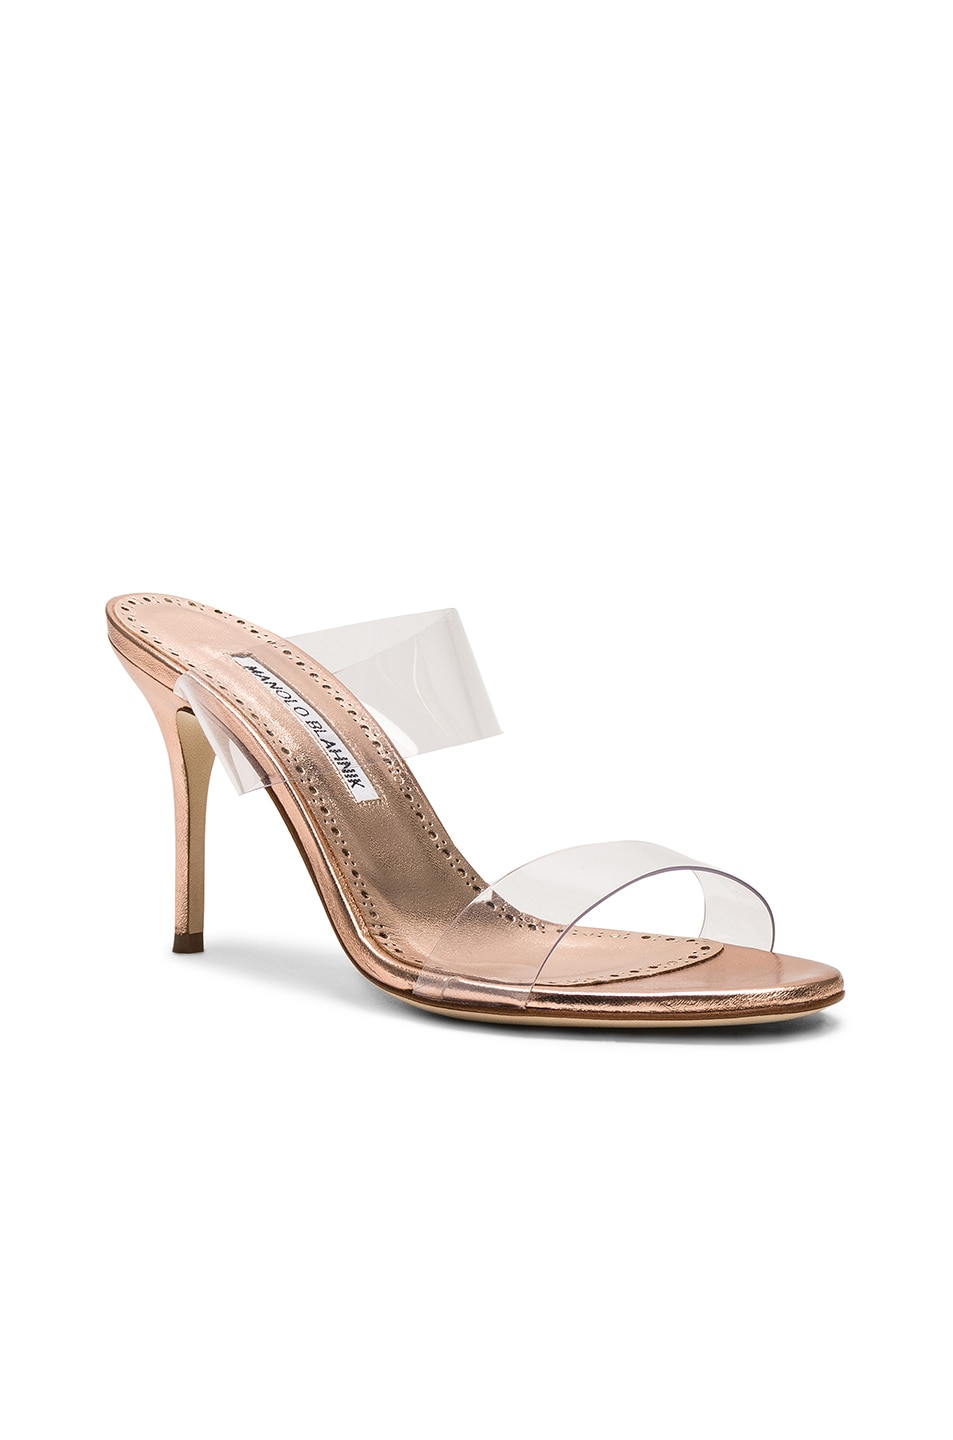 Image 2 of Manolo Blahnik Scolto 90 Mule in Cipria Rose Gold